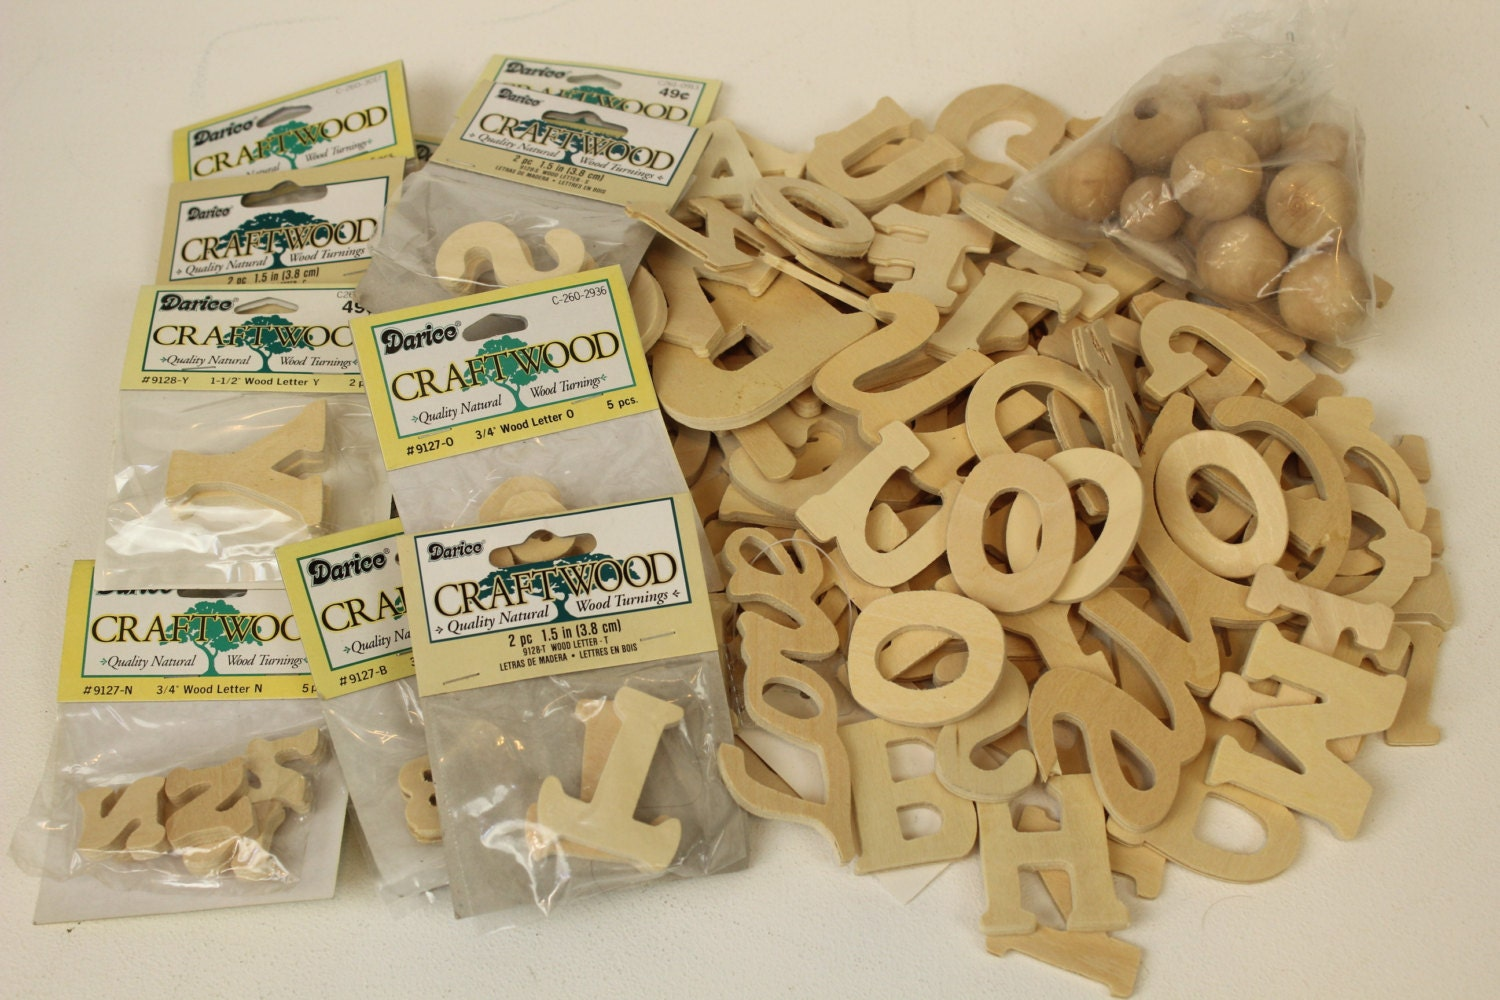 Wood letters craft supplies darice craftwood quality wood for Wooden craft supplies online